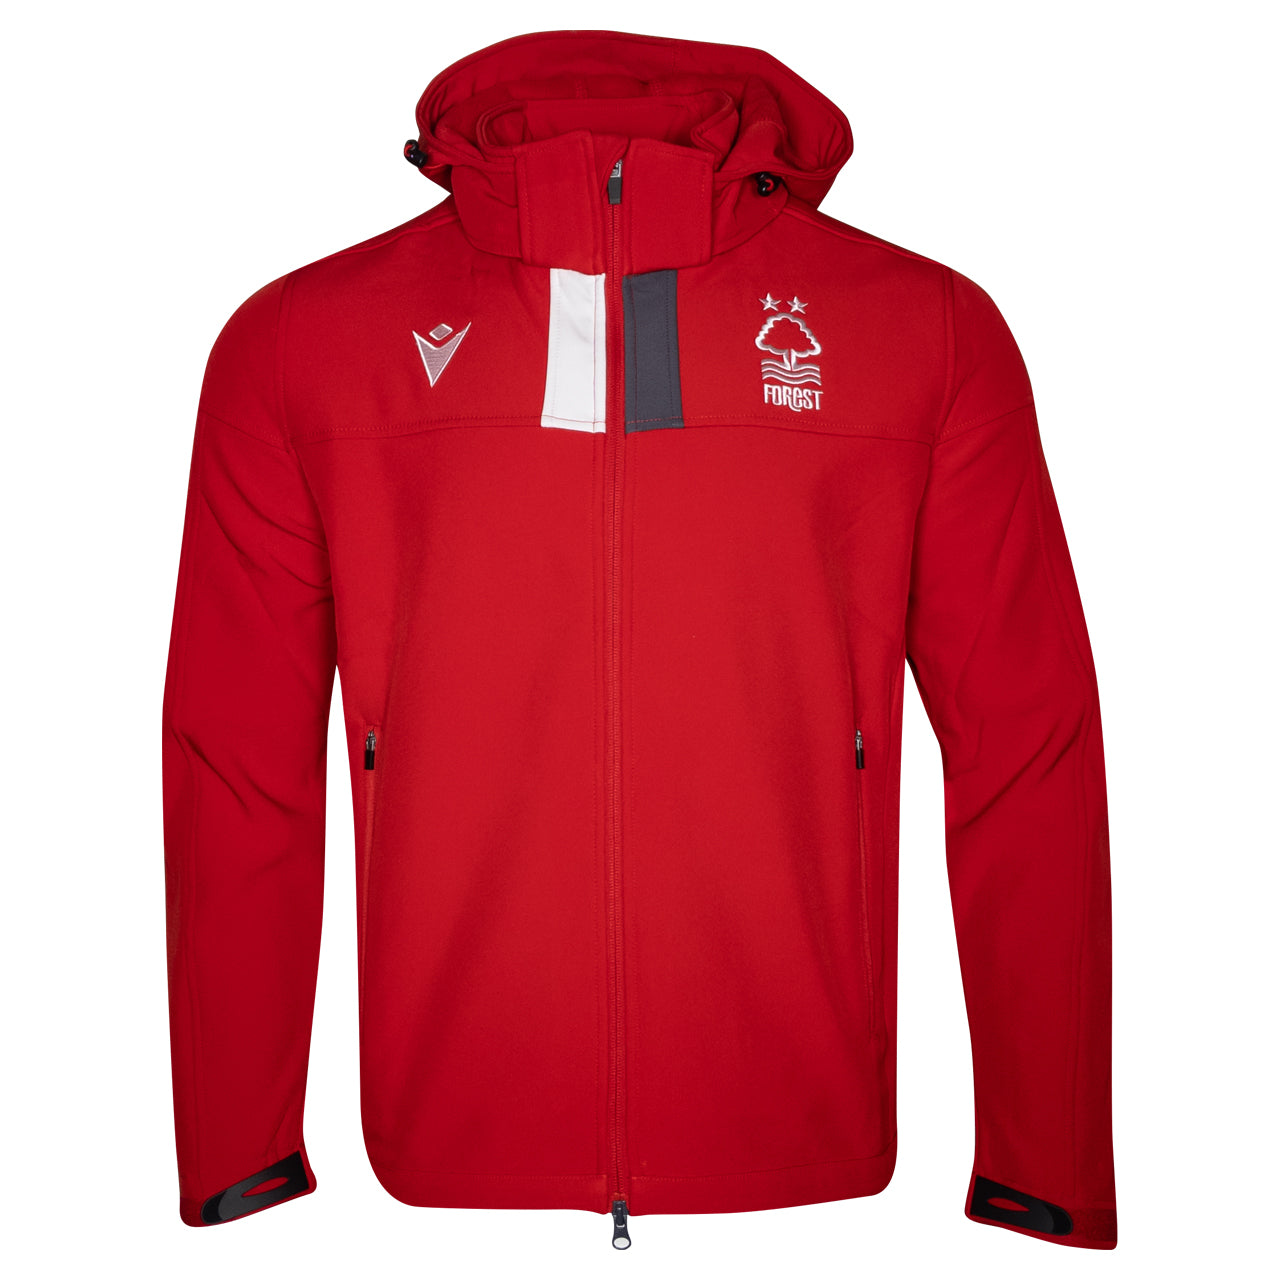 NFFC Mens Red Player Softshell Jacket 19/20